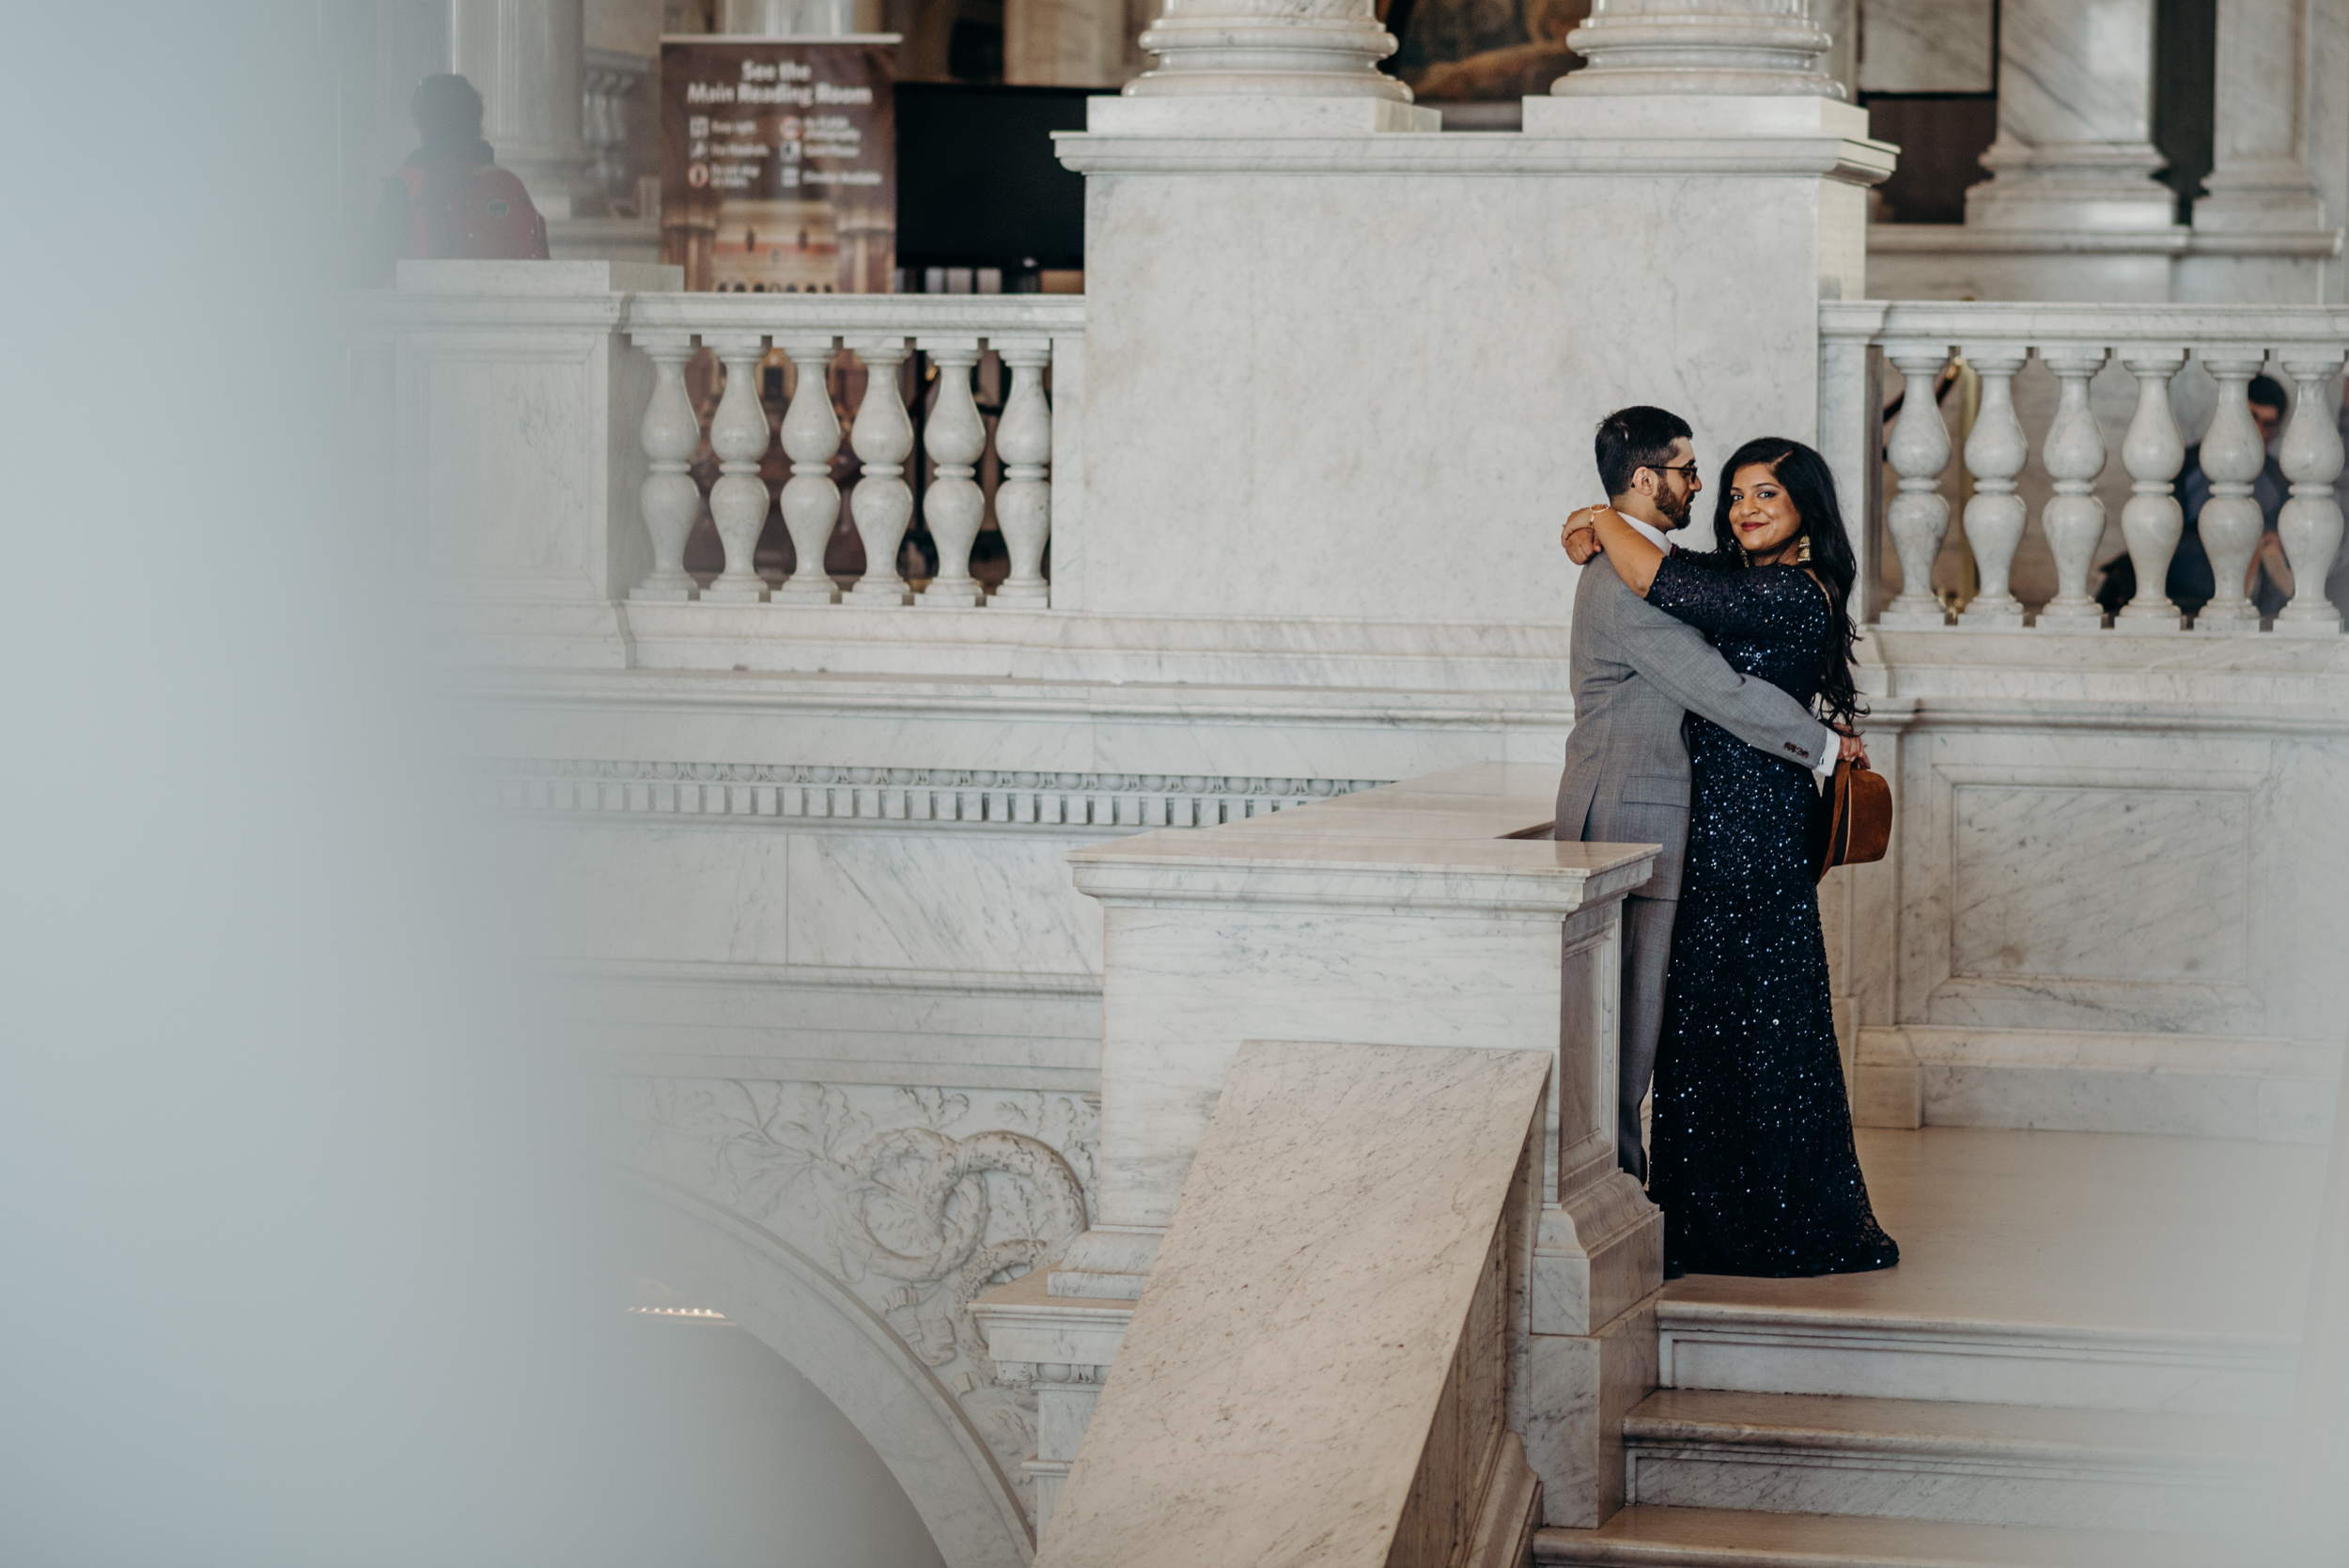 library-of-congress-dc-engagement-photo-megan-graham-photography-51.jpg